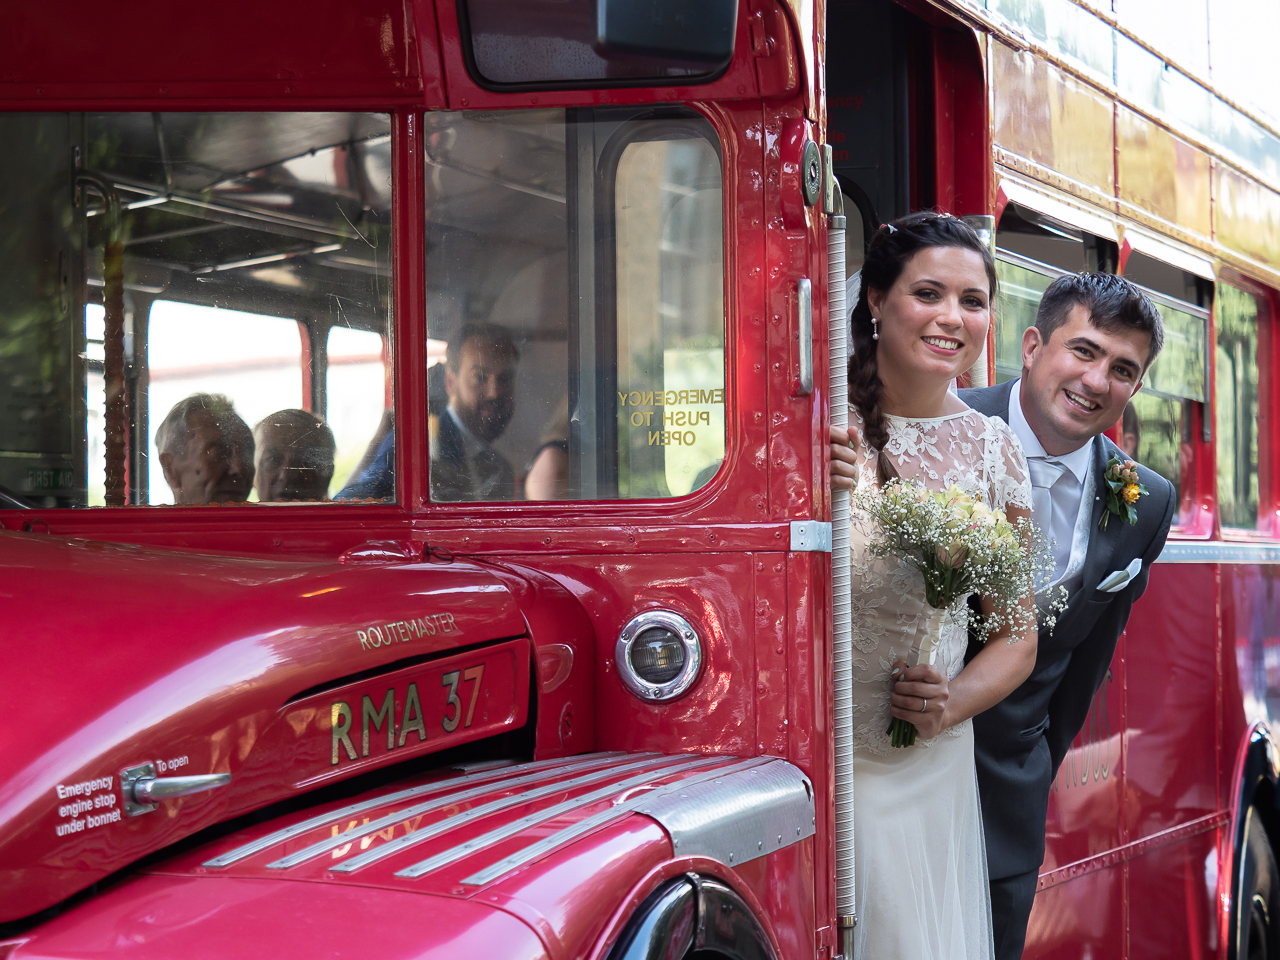 Bride-and-groom-on-red-double-decker-bus